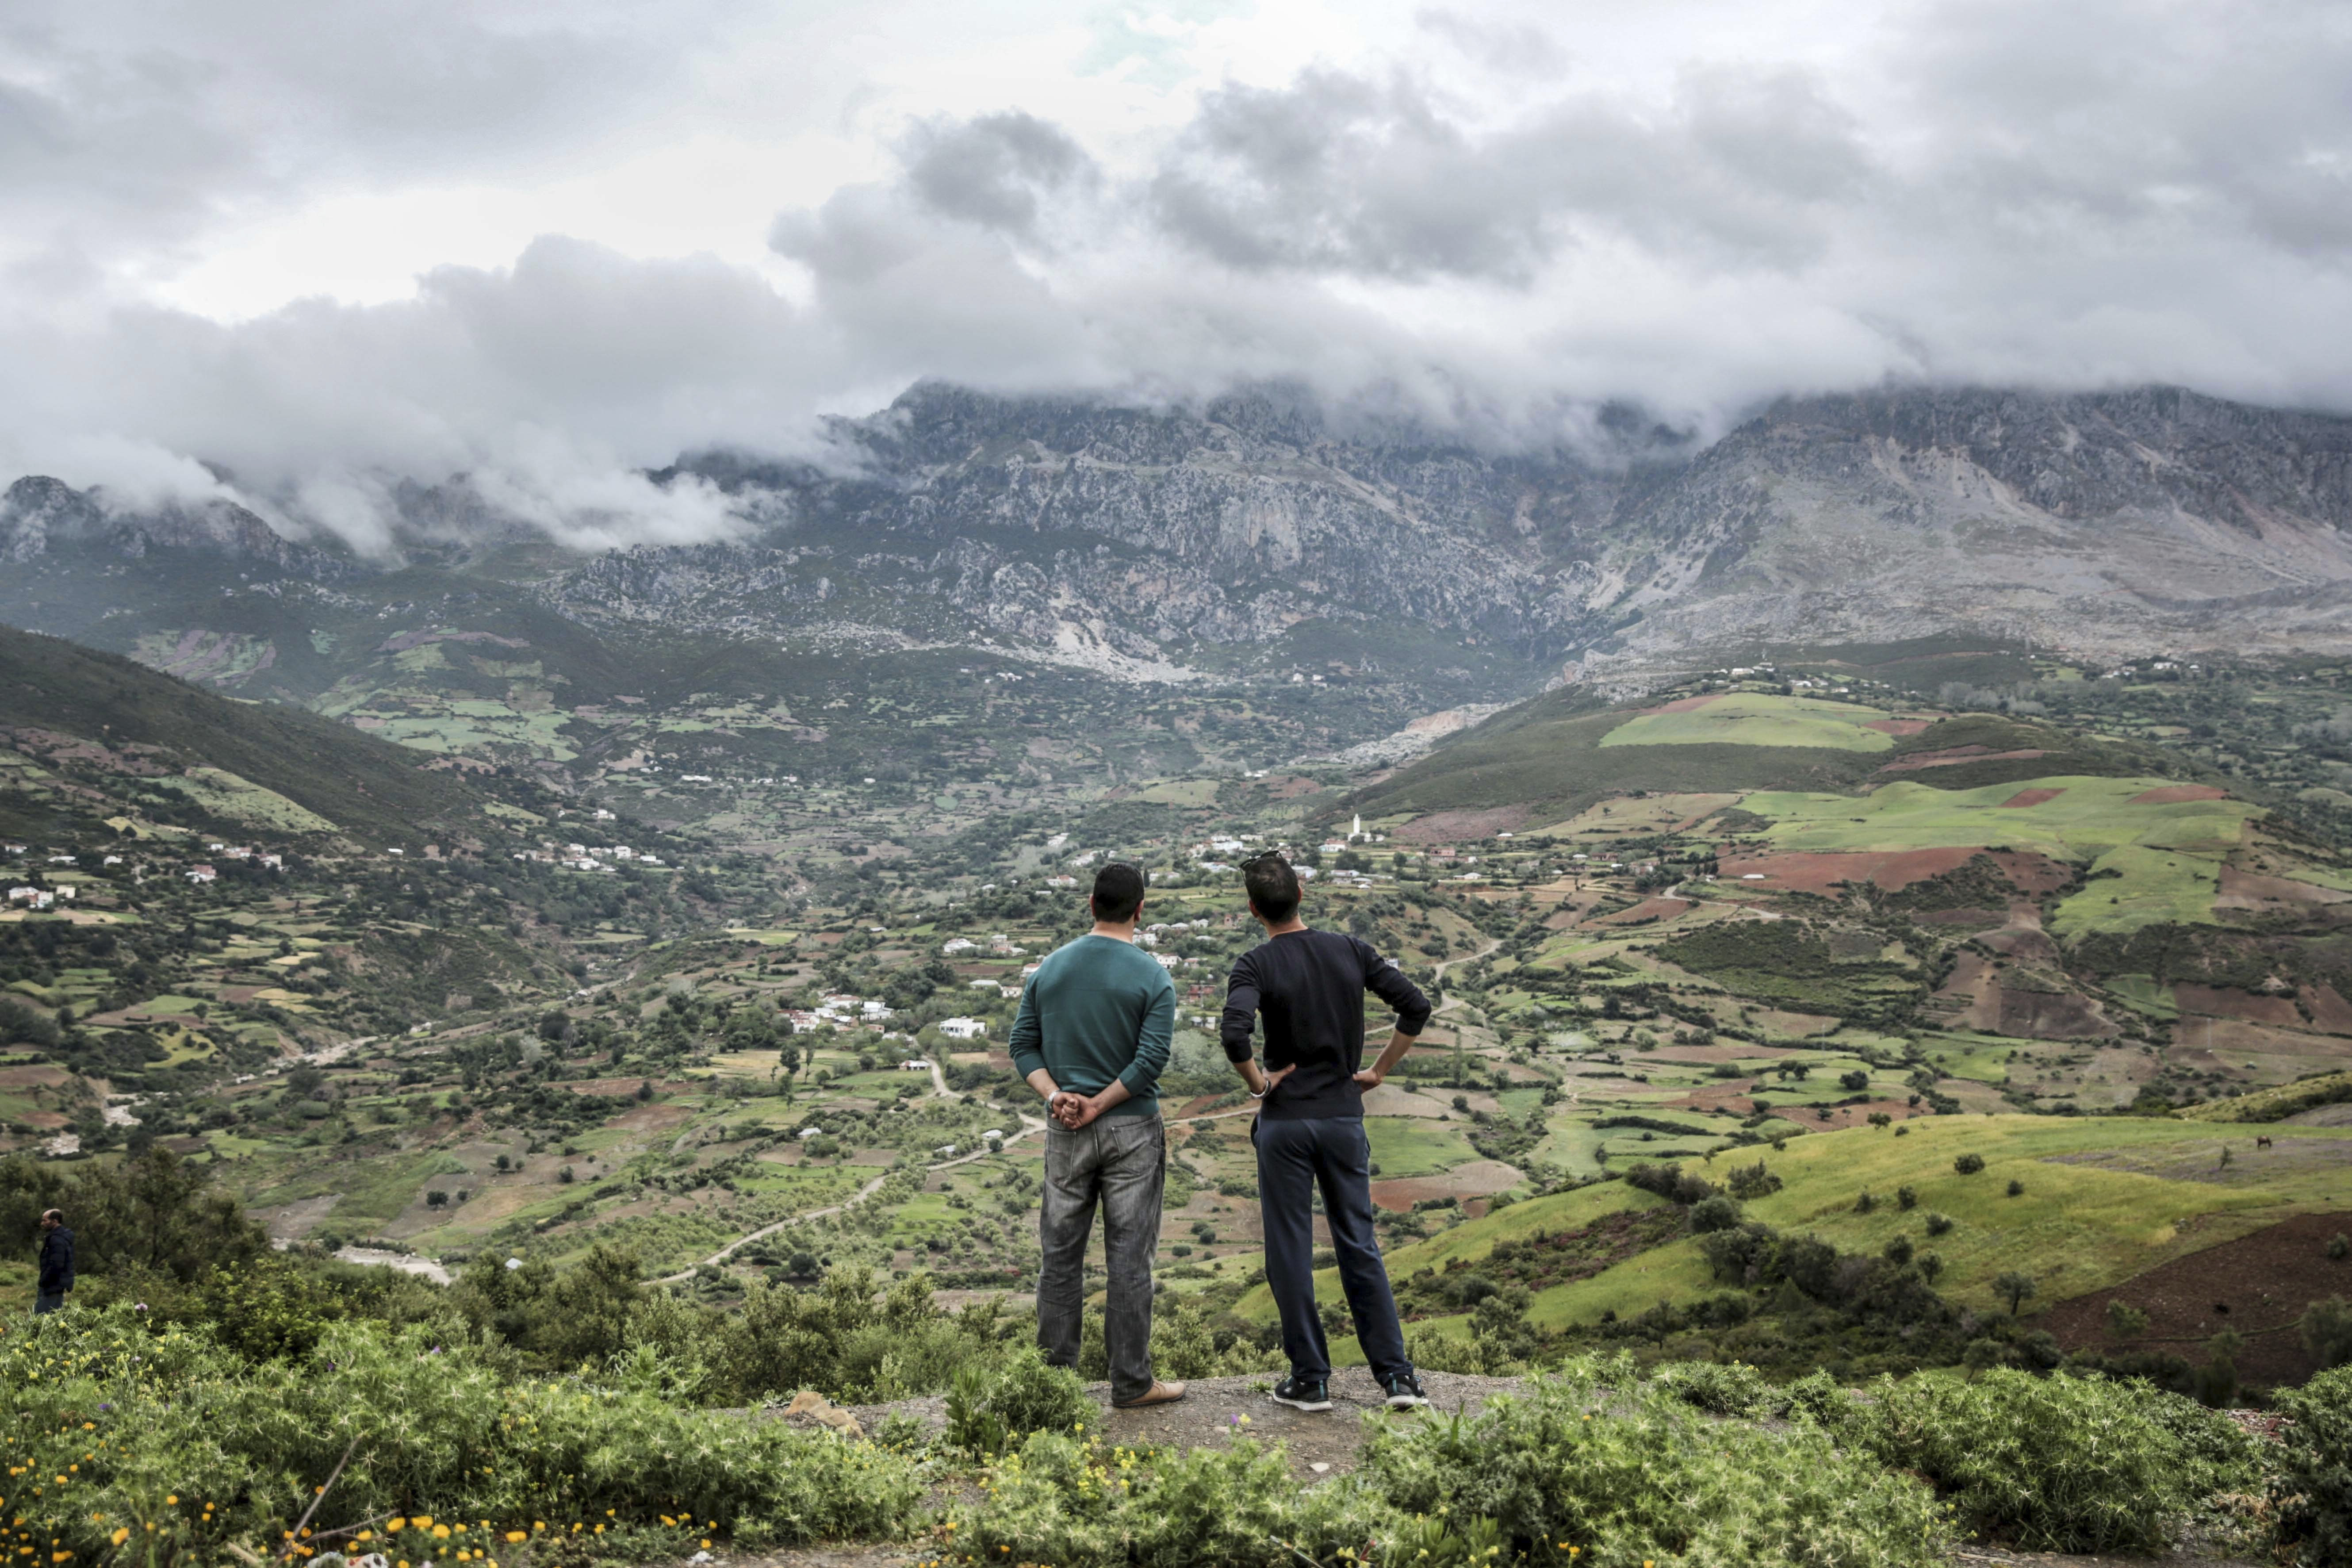 "<div class=""meta image-caption""><div class=""origin-logo origin-image ap""><span>AP</span></div><span class=""caption-text"">Two men observe rainclouds hanging over the Rif mountains near Tetouan, northern Morocco (AP)</span></div>"